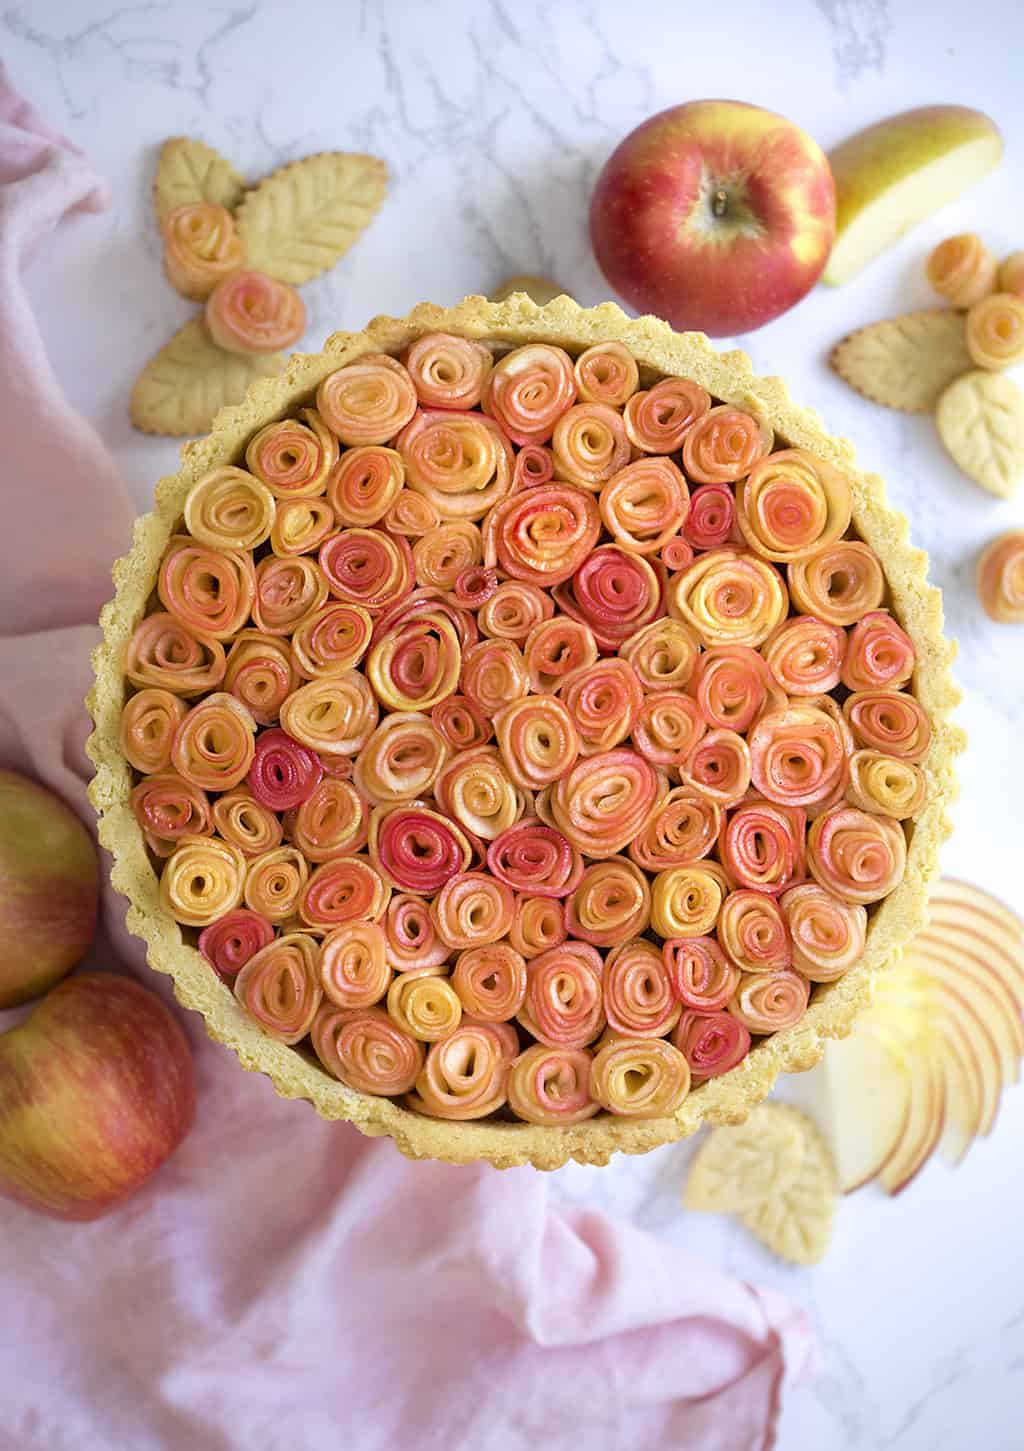 A photo of an apple rose tart on a marble table.